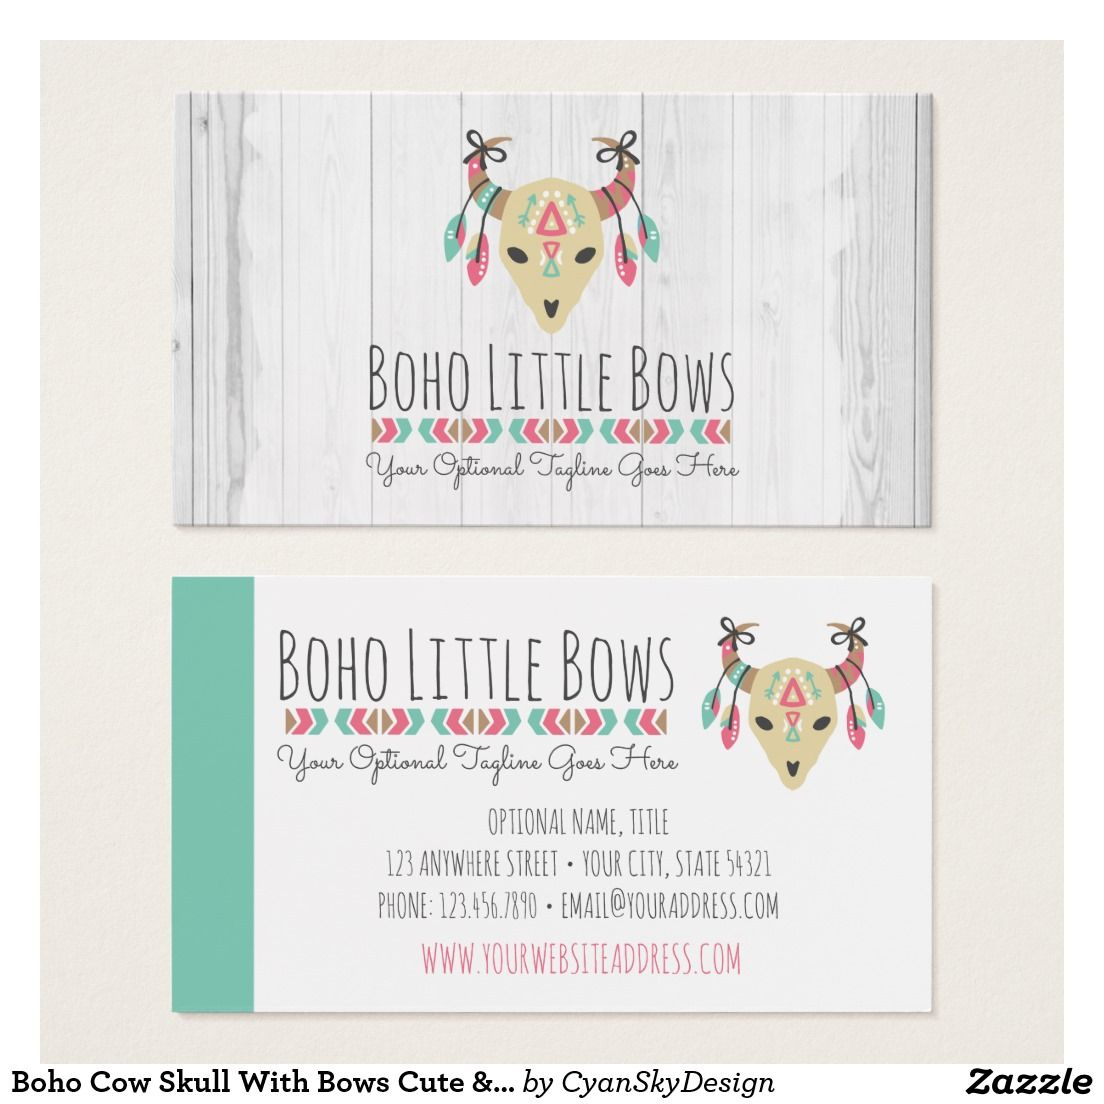 Boho cow skull with bows cute rustic boutique business